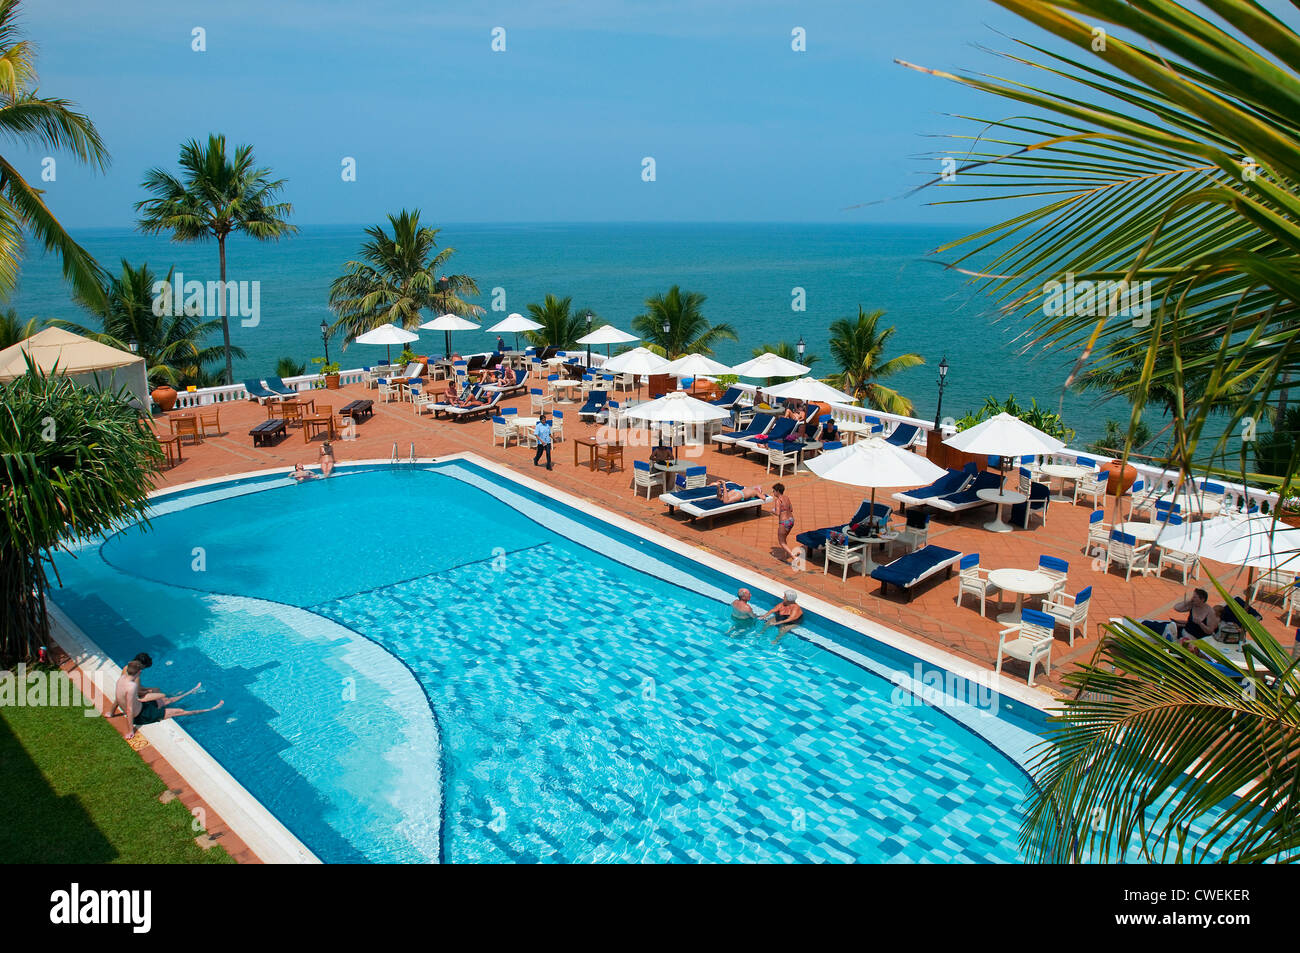 Mount Lavinia Hotel Pool Terrace Colombo Sri Lanka Stock Photo Royalty Free Image 50109775